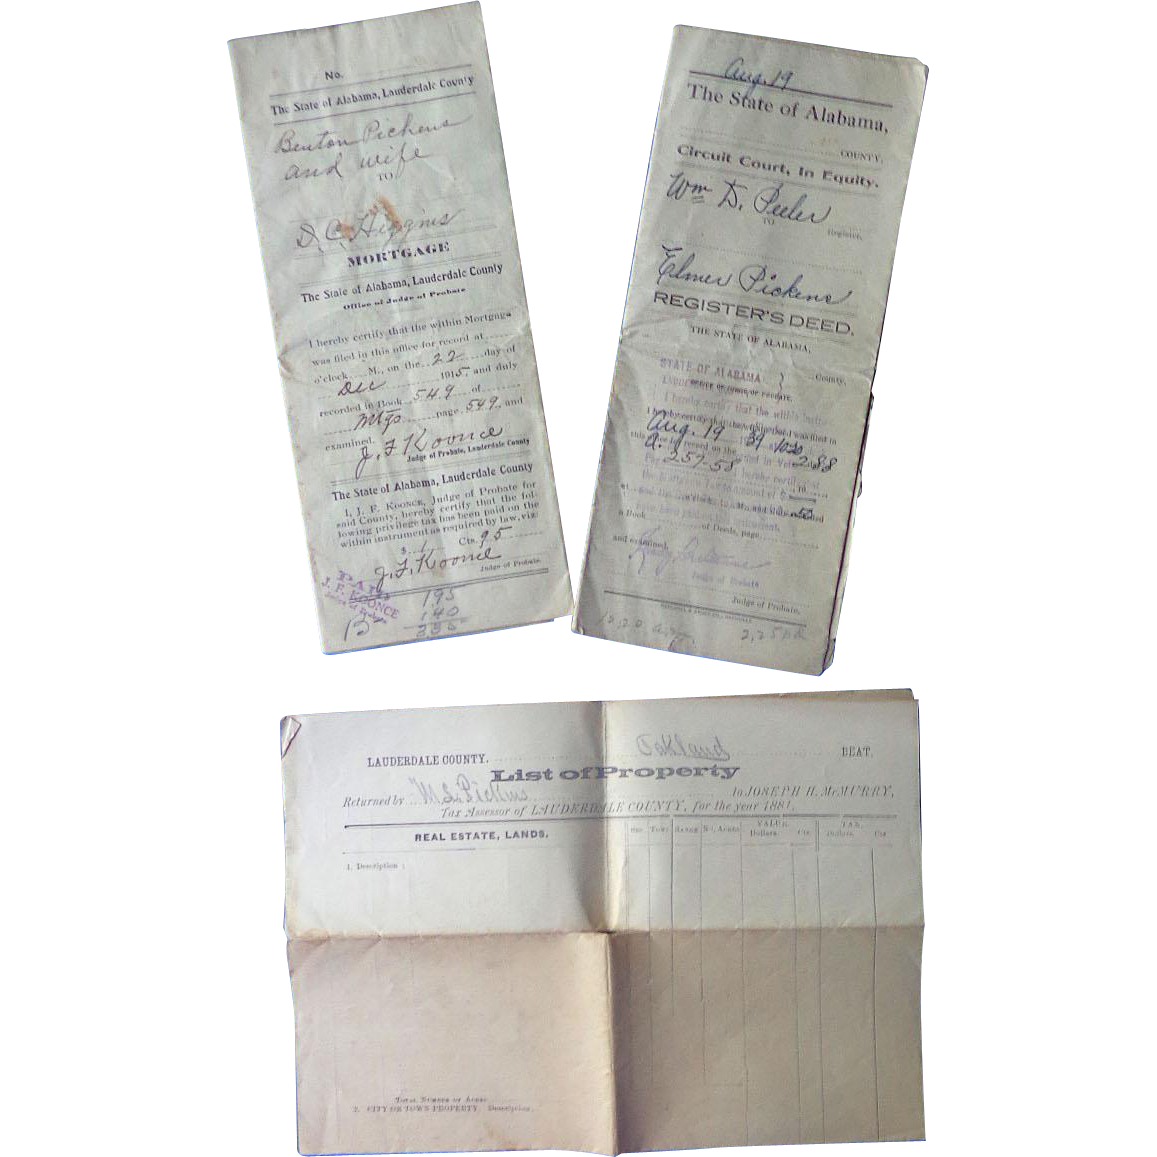 Archive of Legal Documents of Pickens Family of Lauderdale County,Alabama